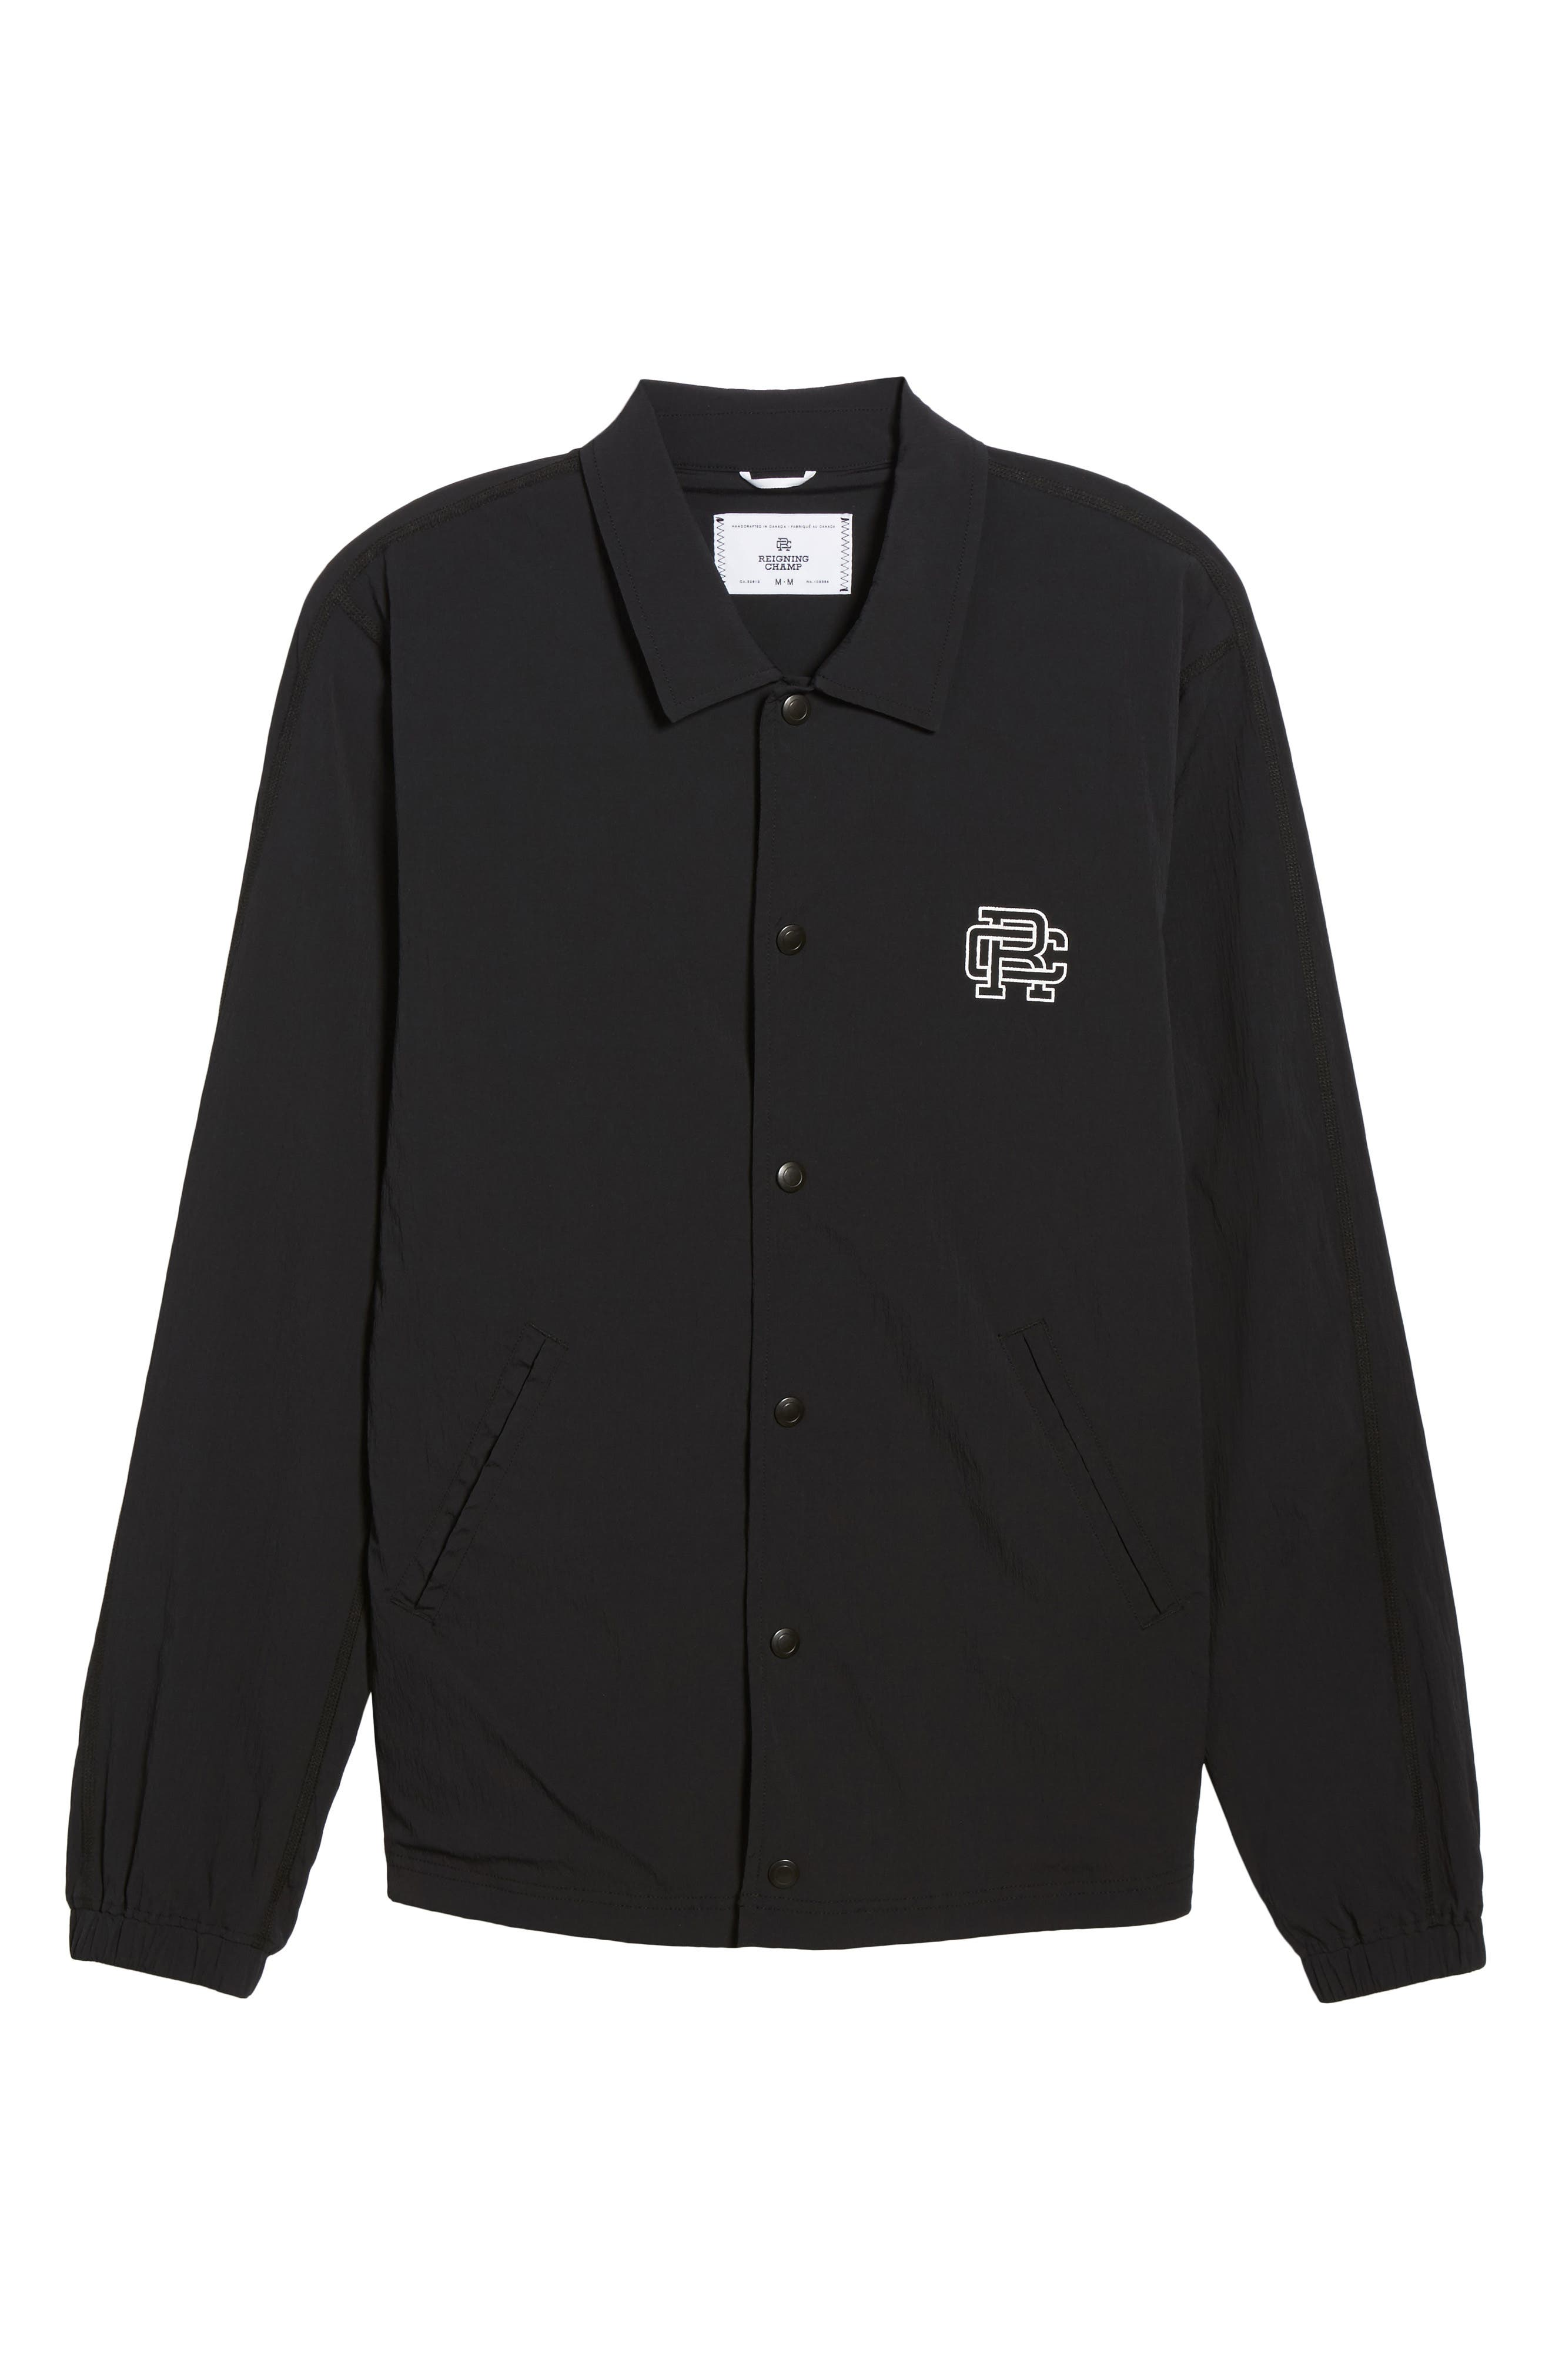 Coach's Jacket,                             Alternate thumbnail 6, color,                             Black